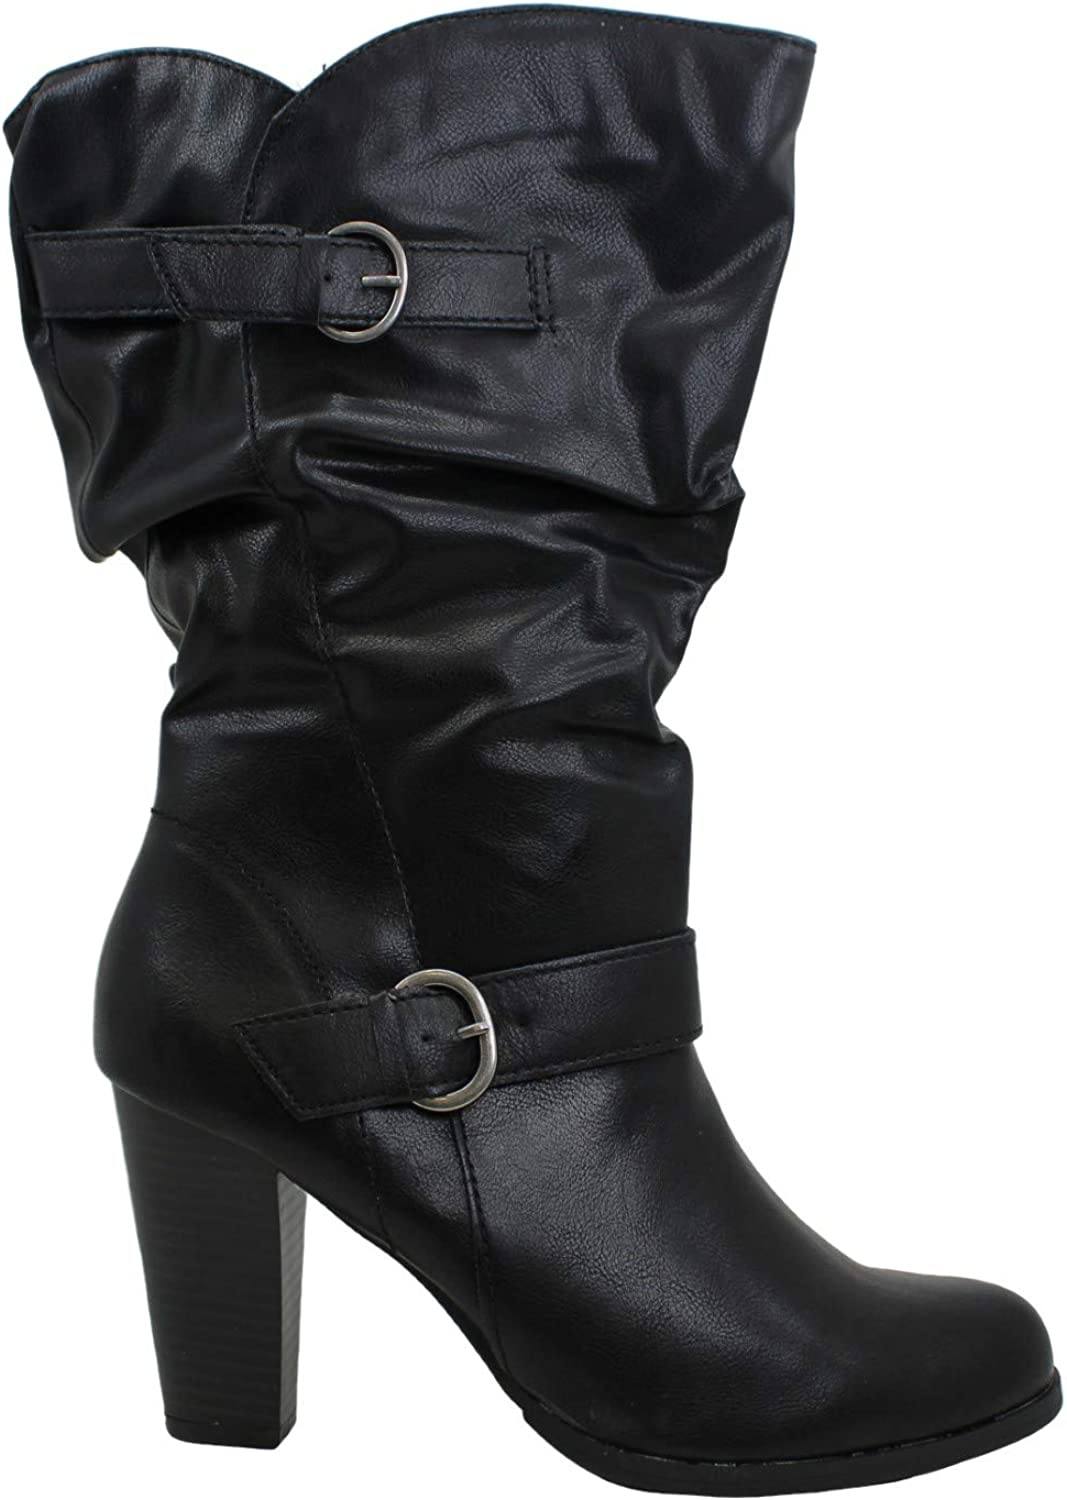 Style Co Women's Sachi Block-Heel Black Mid-Shaft lowest price 1 Boots Size Max 70% OFF